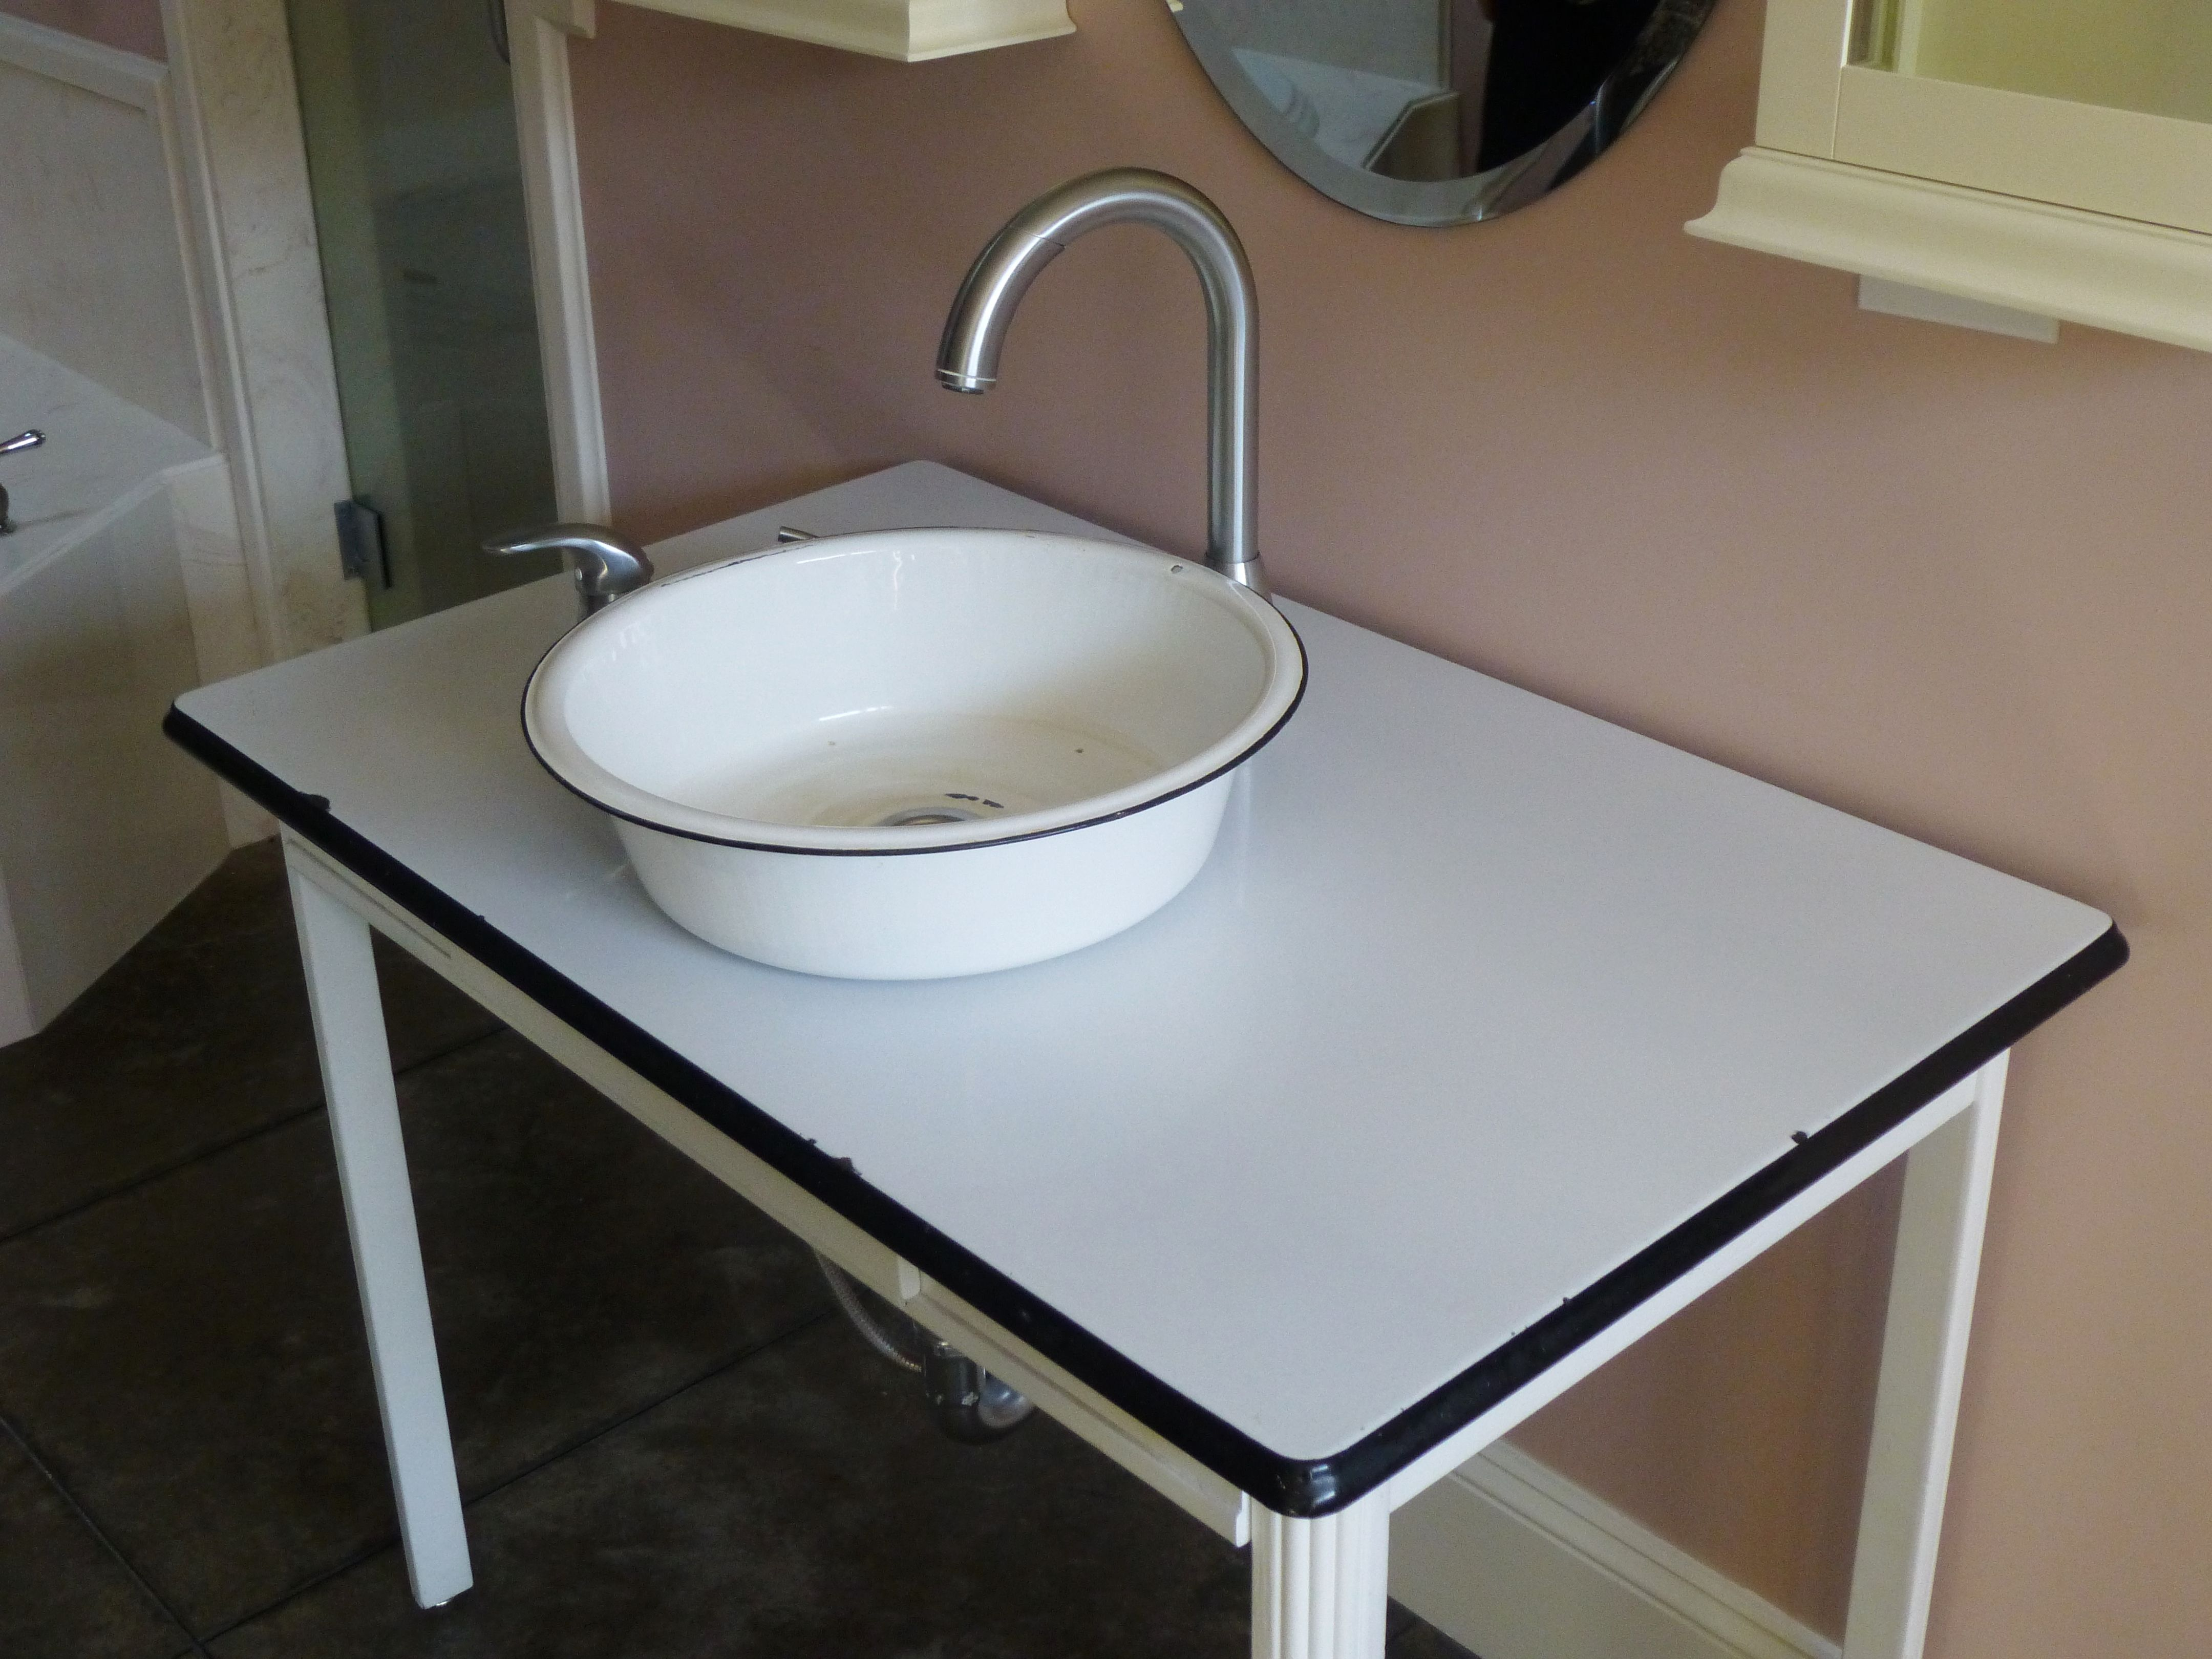 Bathroom Sink In A High End House Made From An Enamel Pan And